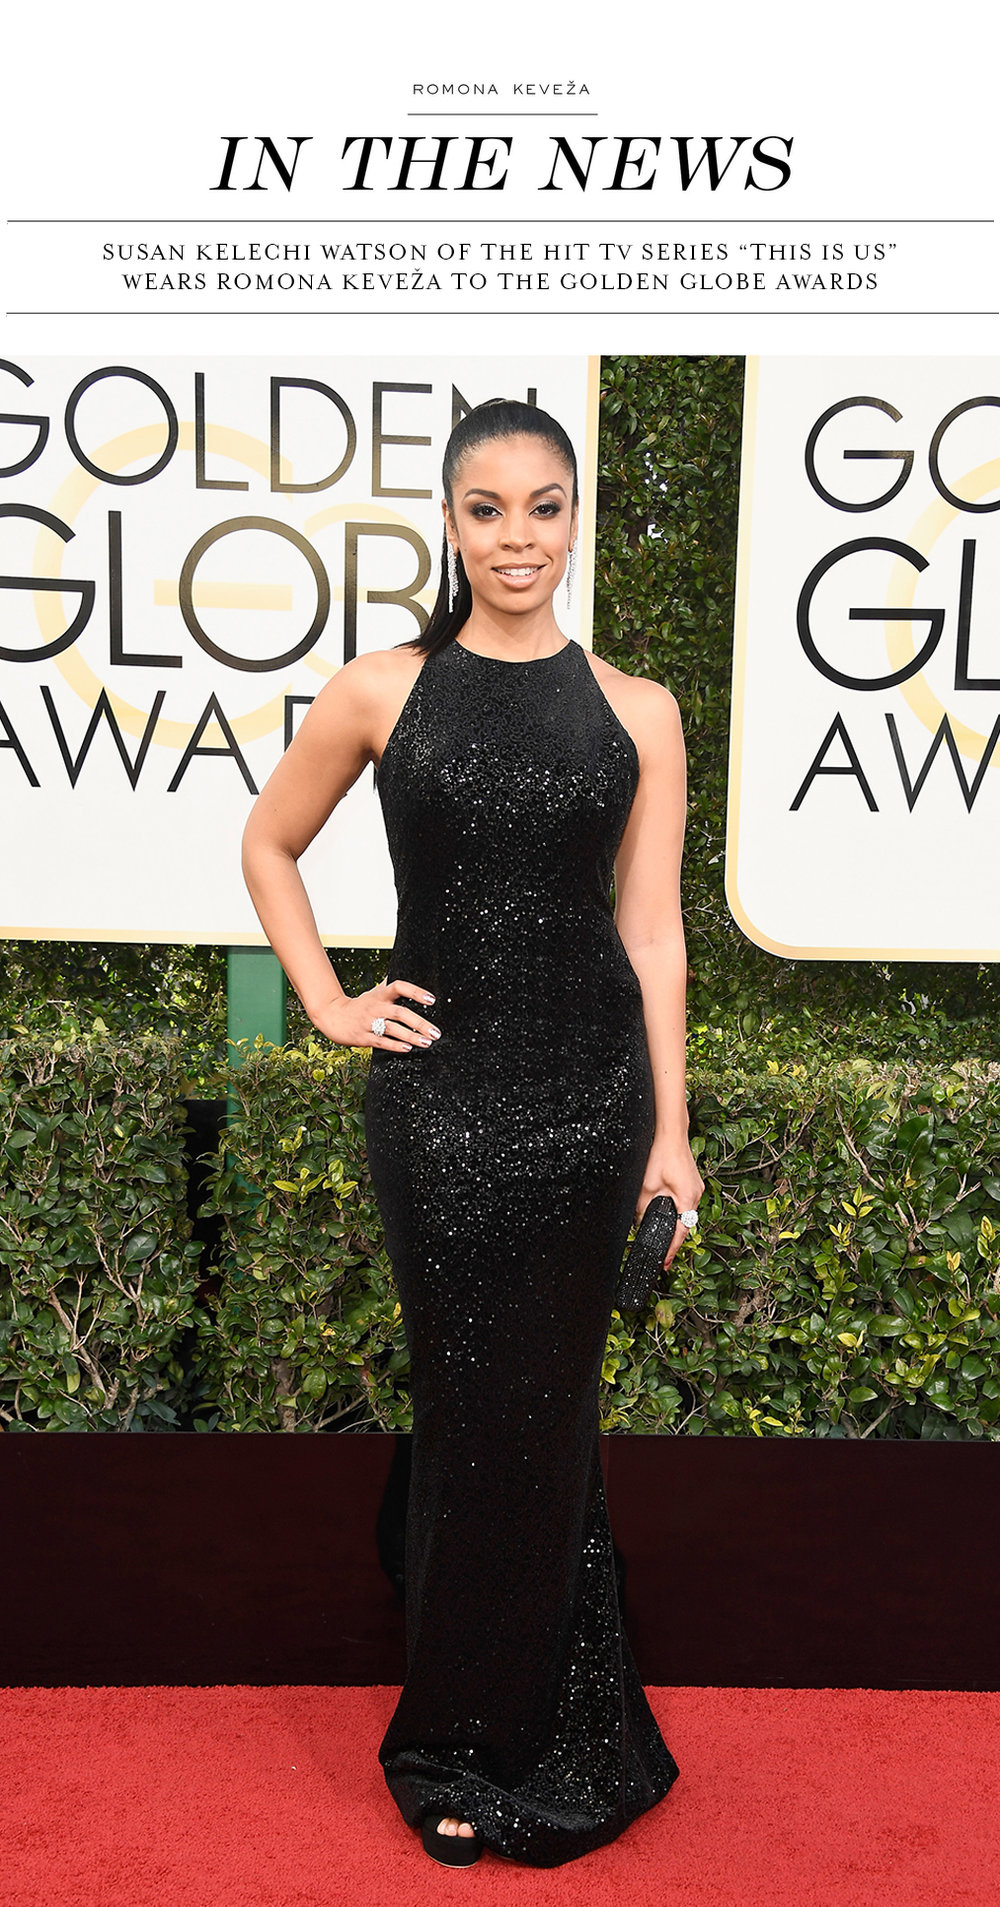 SUSAN-KELECHI-WATSON-WEARS-RKC-AT-THE-GOLDEN-GLOBES.jpg